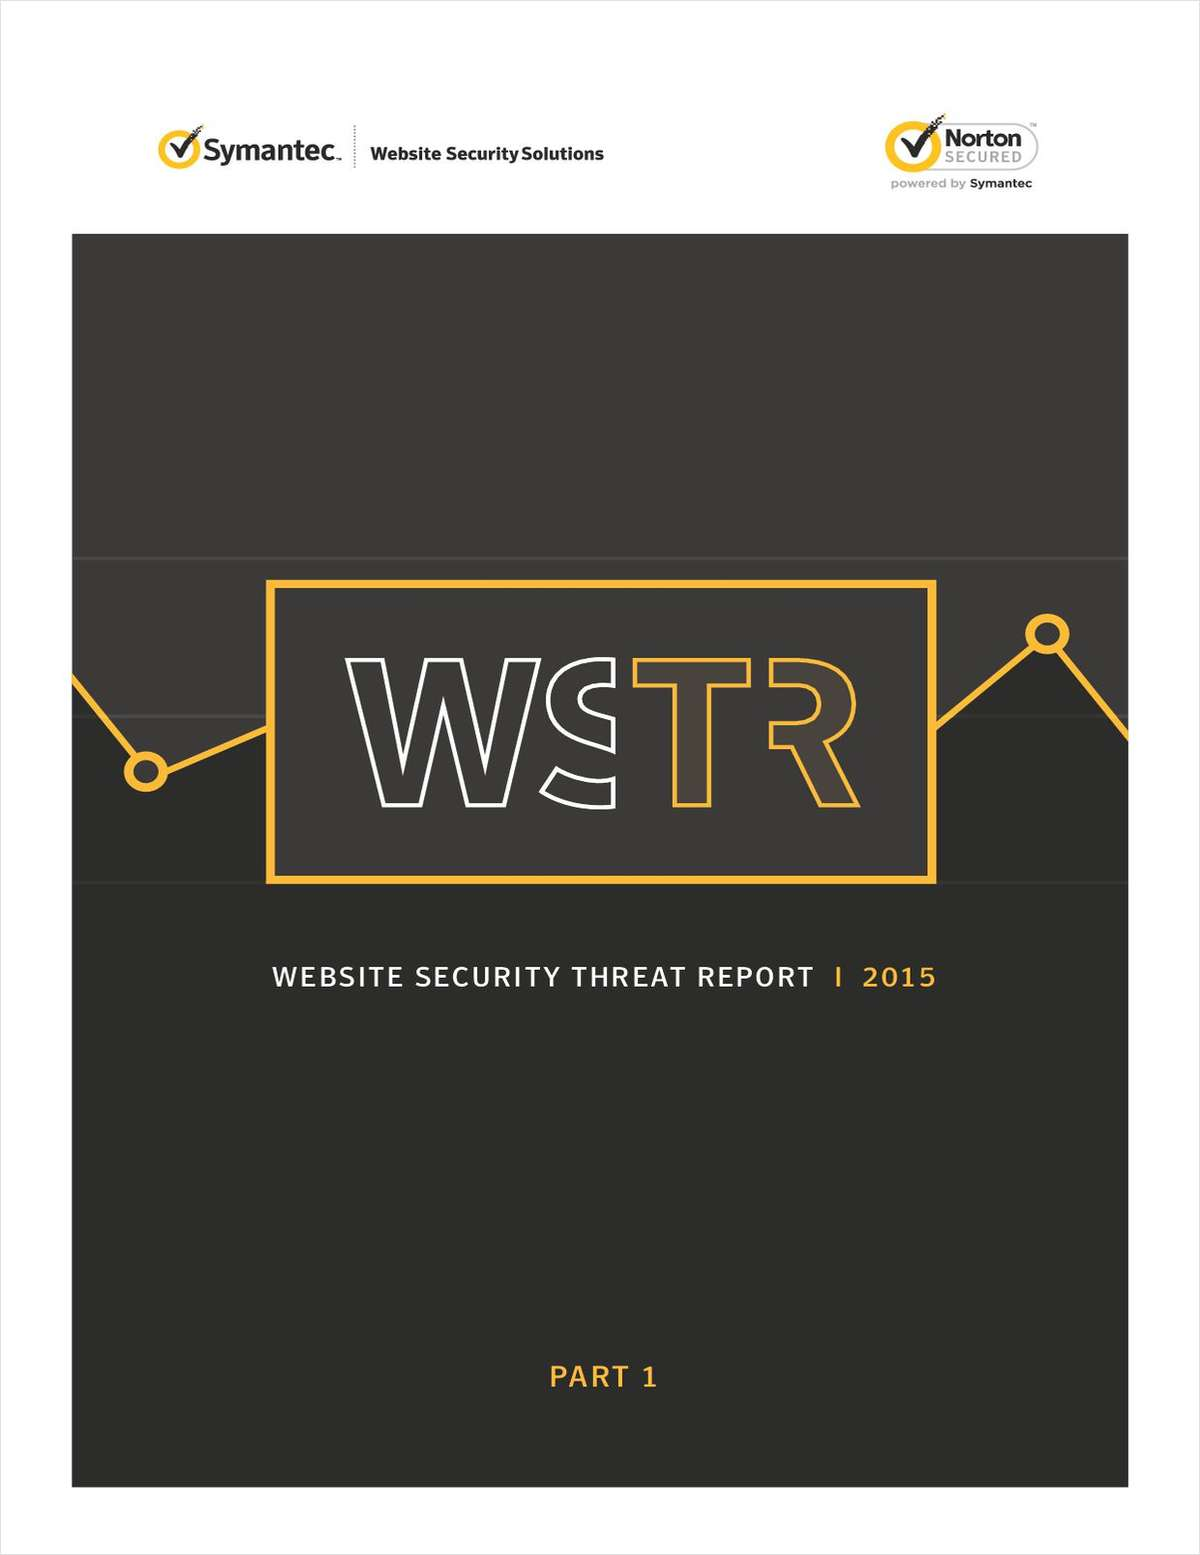 Website Security Threat Report 2015: Part 1